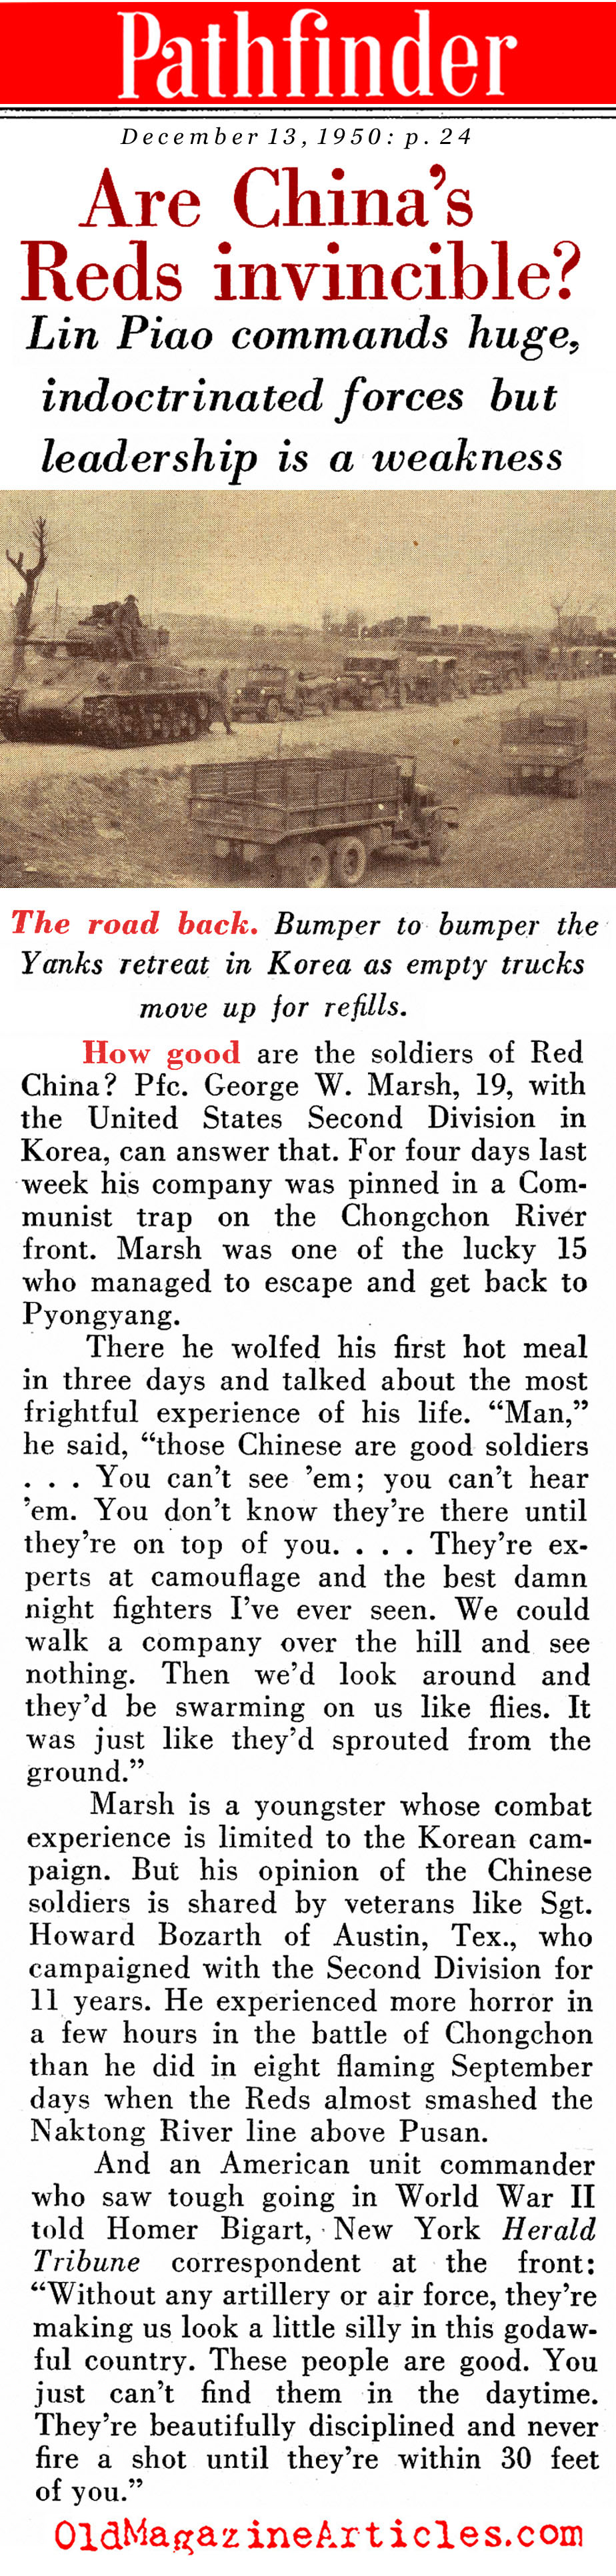 The Invincible Chinese? (Pathfinder Magazine, 1950)